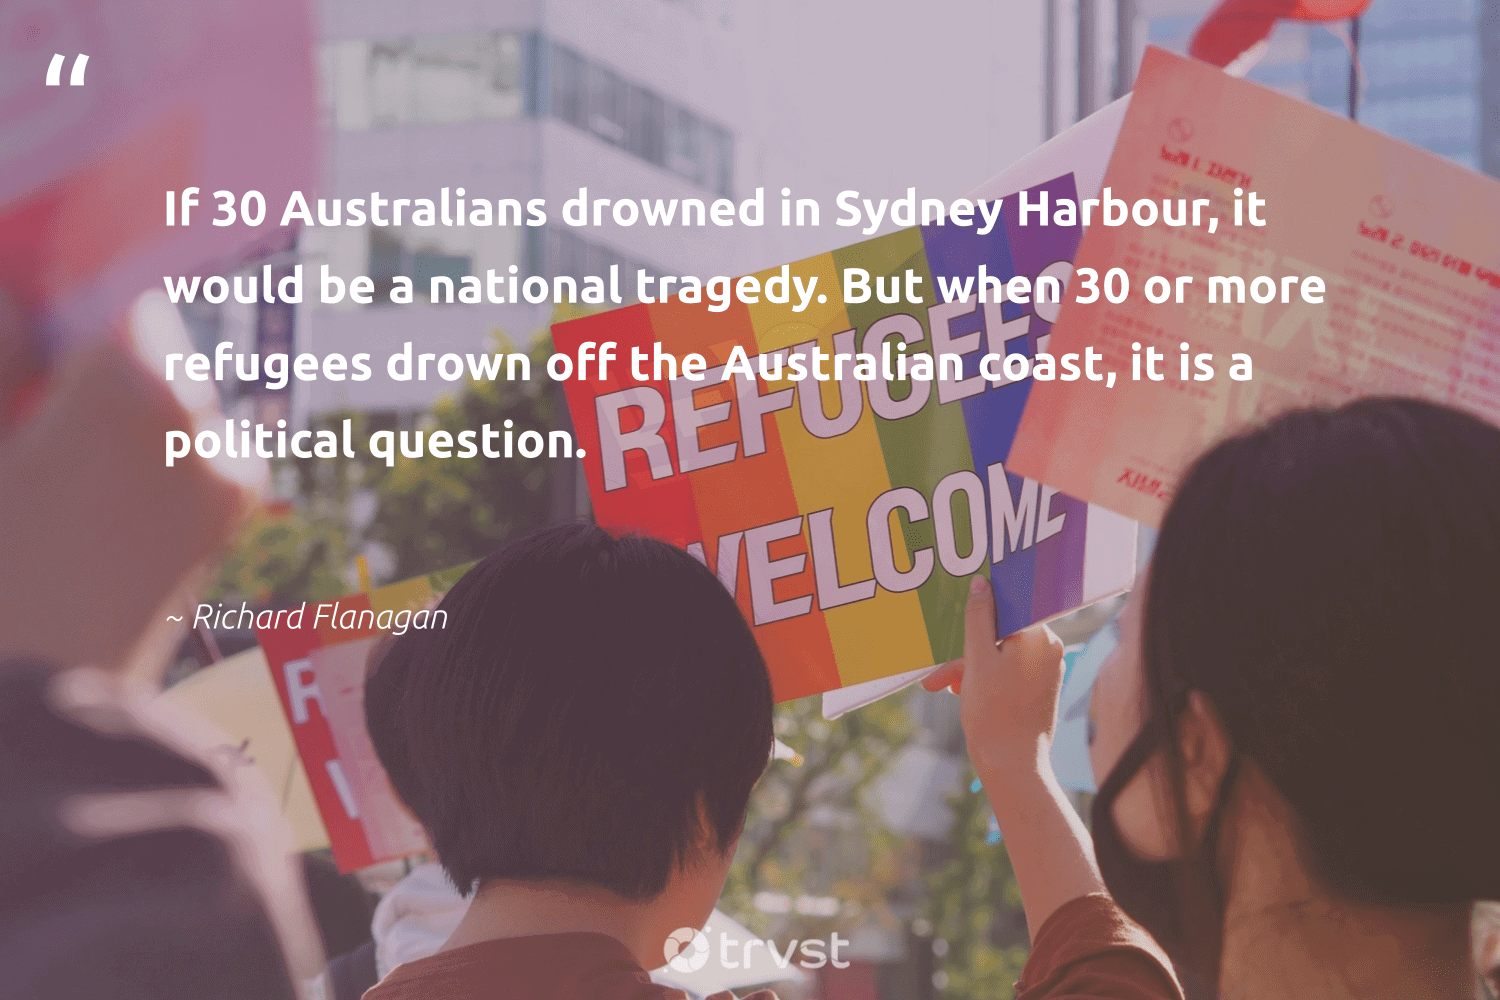 """""""If 30 Australians drowned in Sydney Harbour, it would be a national tragedy. But when 30 or more refugees drown off the Australian coast, it is a political question.""""  - Richard Flanagan #trvst #quotes #refugees #refugee #weareallone #inclusion #impact #syria #sustainablefutures #equalrights #socialimpact #refugeeswelcome"""